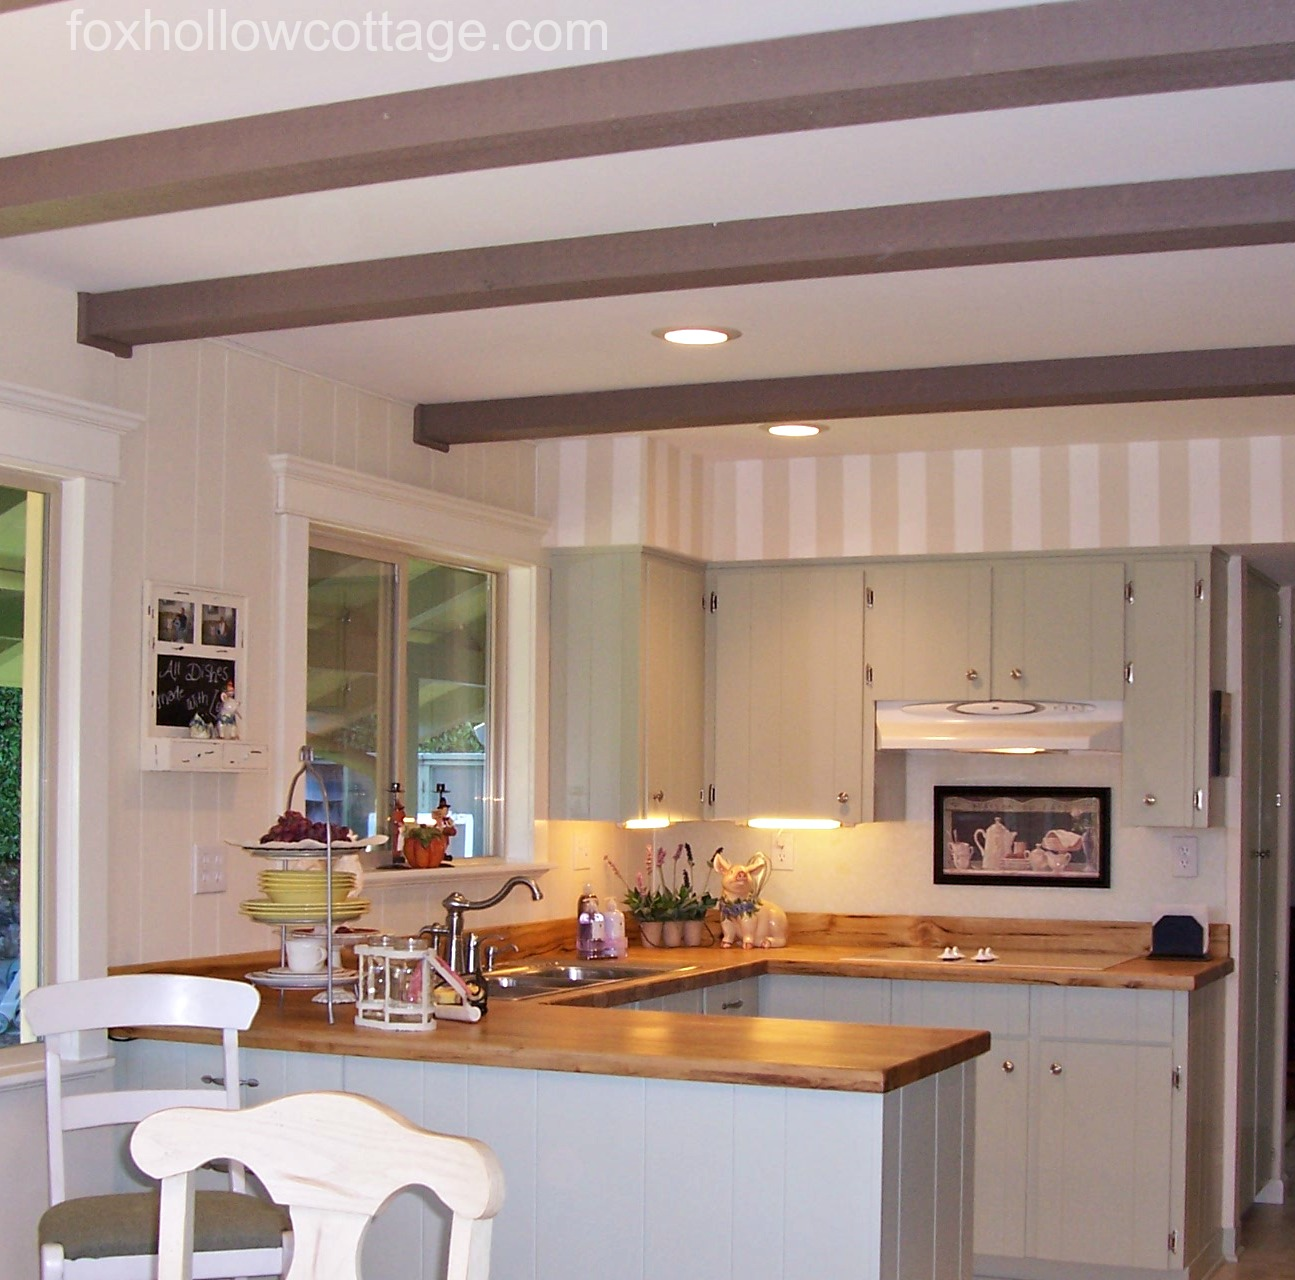 Knotty pine kitchen ceiling my vintage kitchen ideas - I Ve Still Got It Hanging In My Kitchen Today We Had Myrtle Wood Counter Tops At That House Too They Were Custom Made Right In Town And So Beautiful In